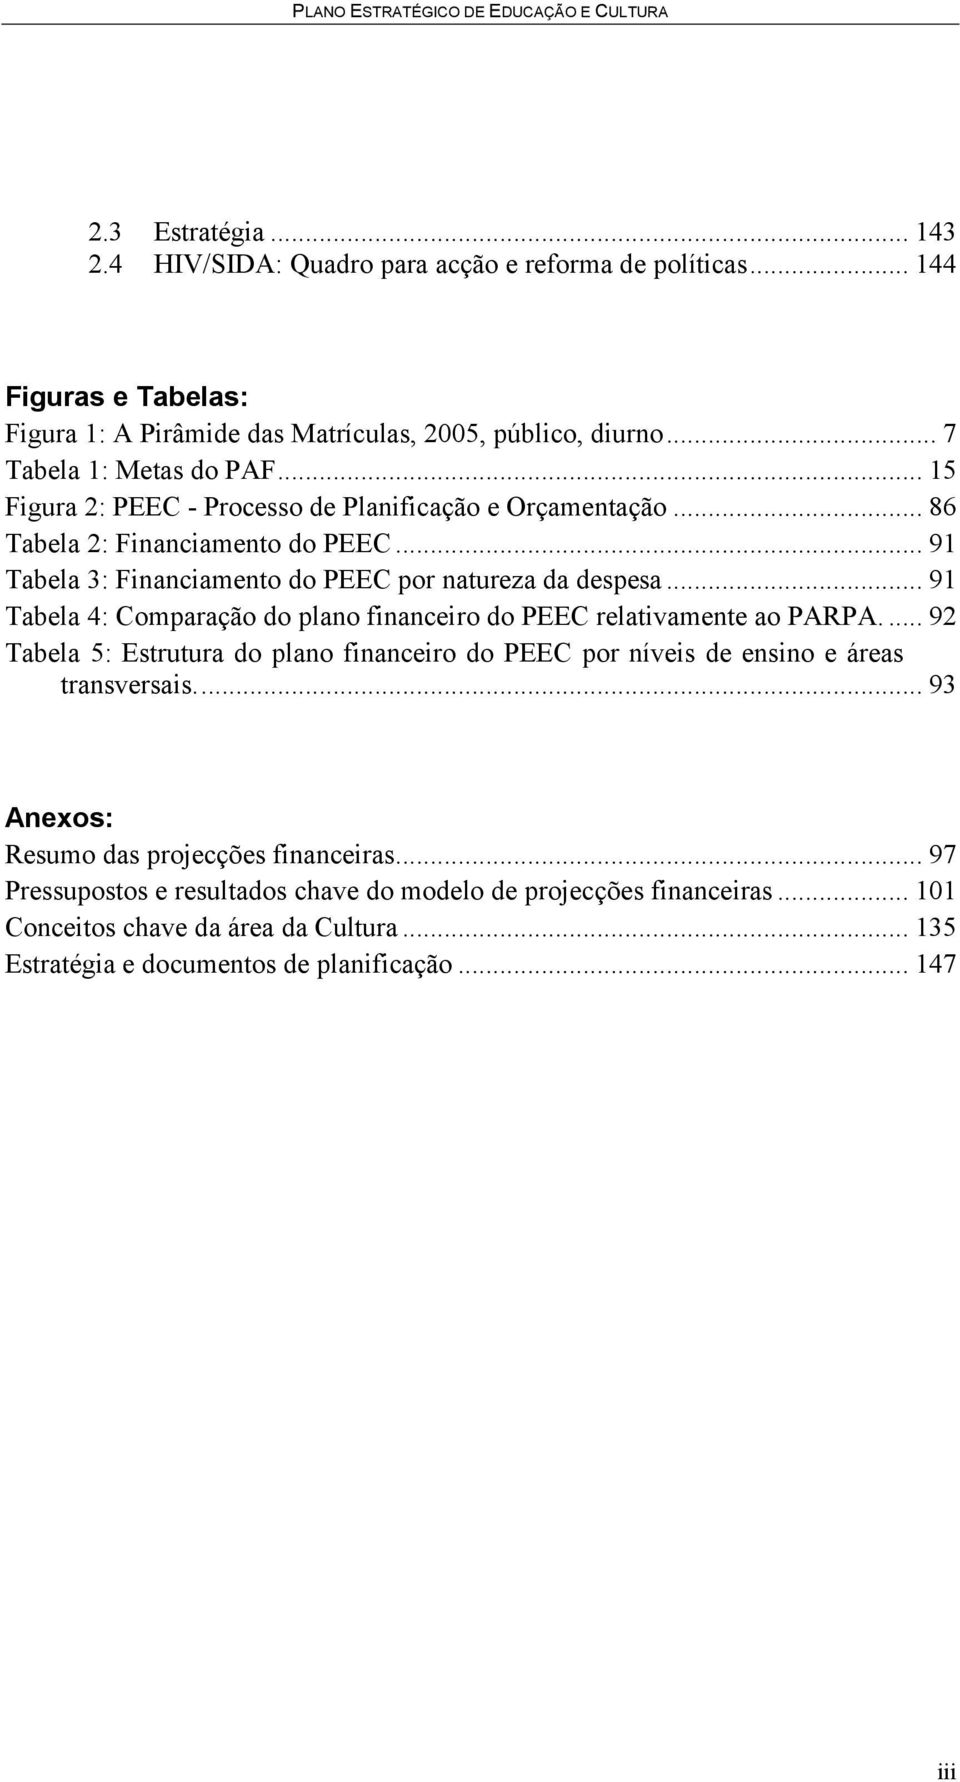 .. 86 Tabela 2: Financiamento do PEEC... 91 Tabela 3: Financiamento do PEEC por natureza da despesa... 91 Tabela 4: Comparação do plano financeiro do PEEC relativamente ao PARPA.